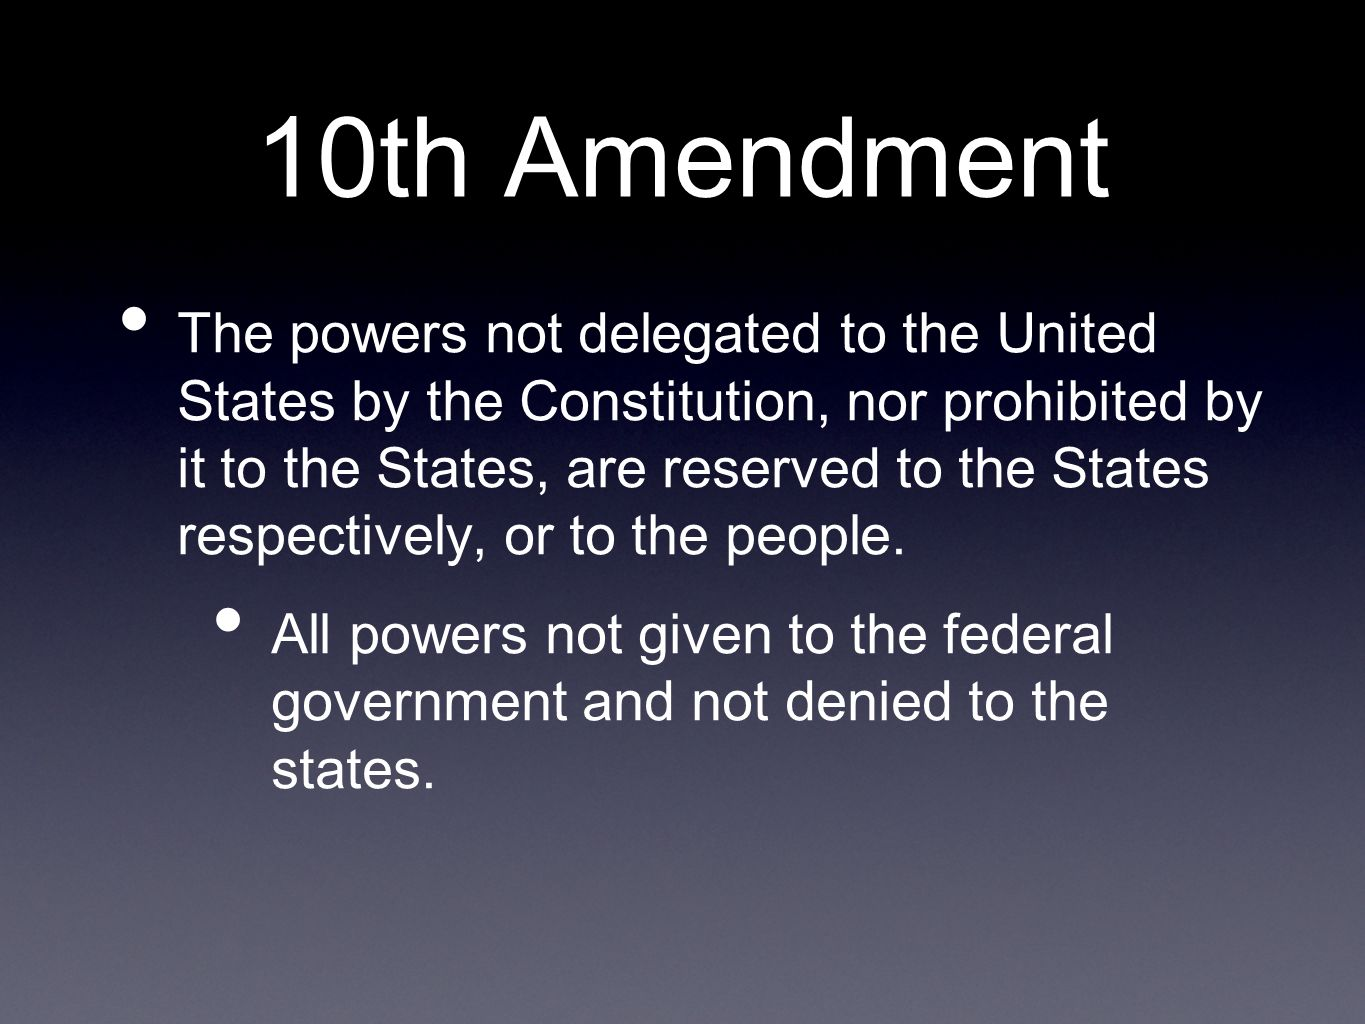 10th Amendment The powers not delegated to the United States by the Constitution, nor prohibited by it to the States, are reserved to the States respectively, or to the people.